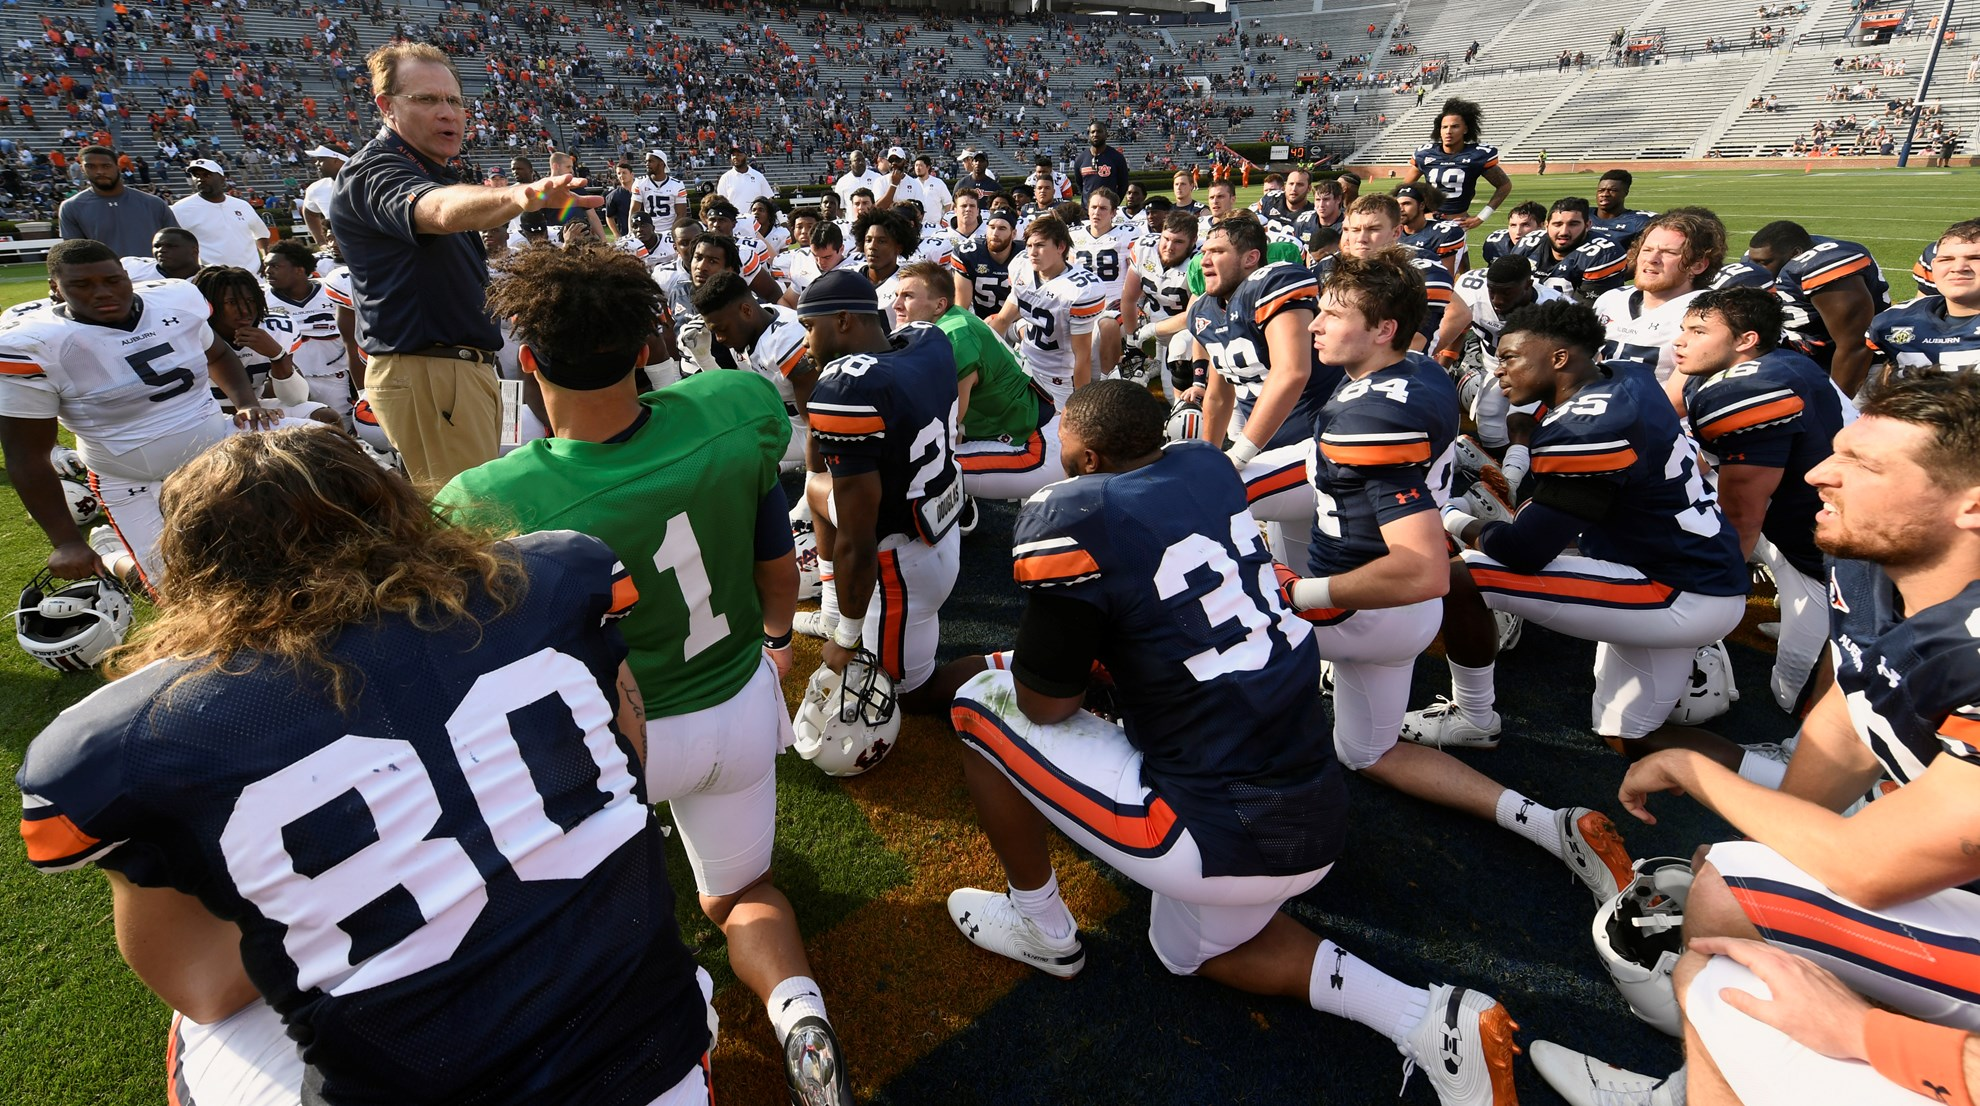 Five Touchdown Passes Highlight Auburn S A Day Auburn